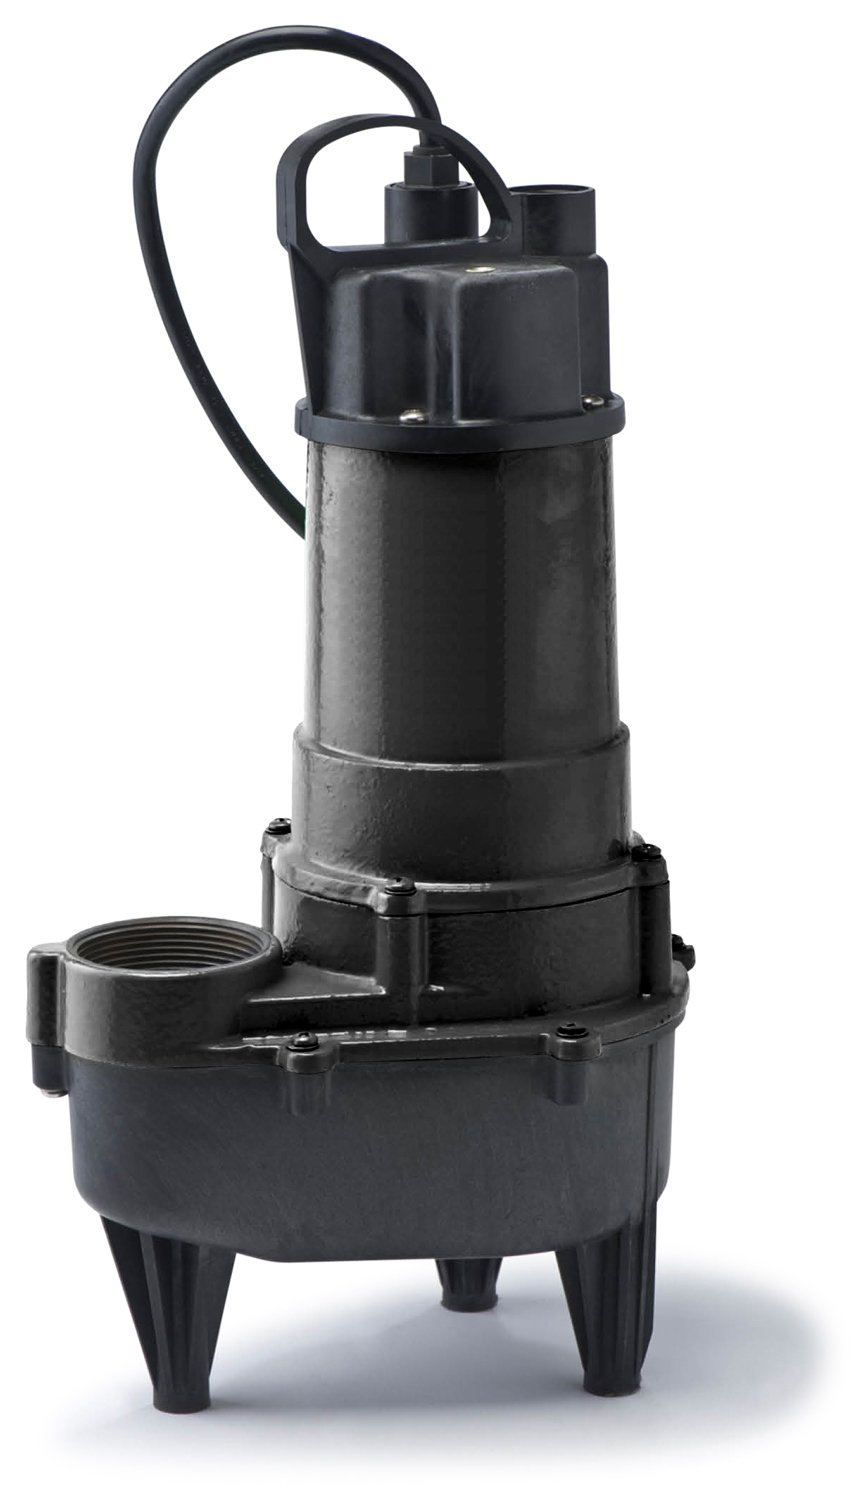 ECO-FLO Products RSE50M Manual Cast Iron Sewage Pump, 1/2 HP, 7,800 GPH